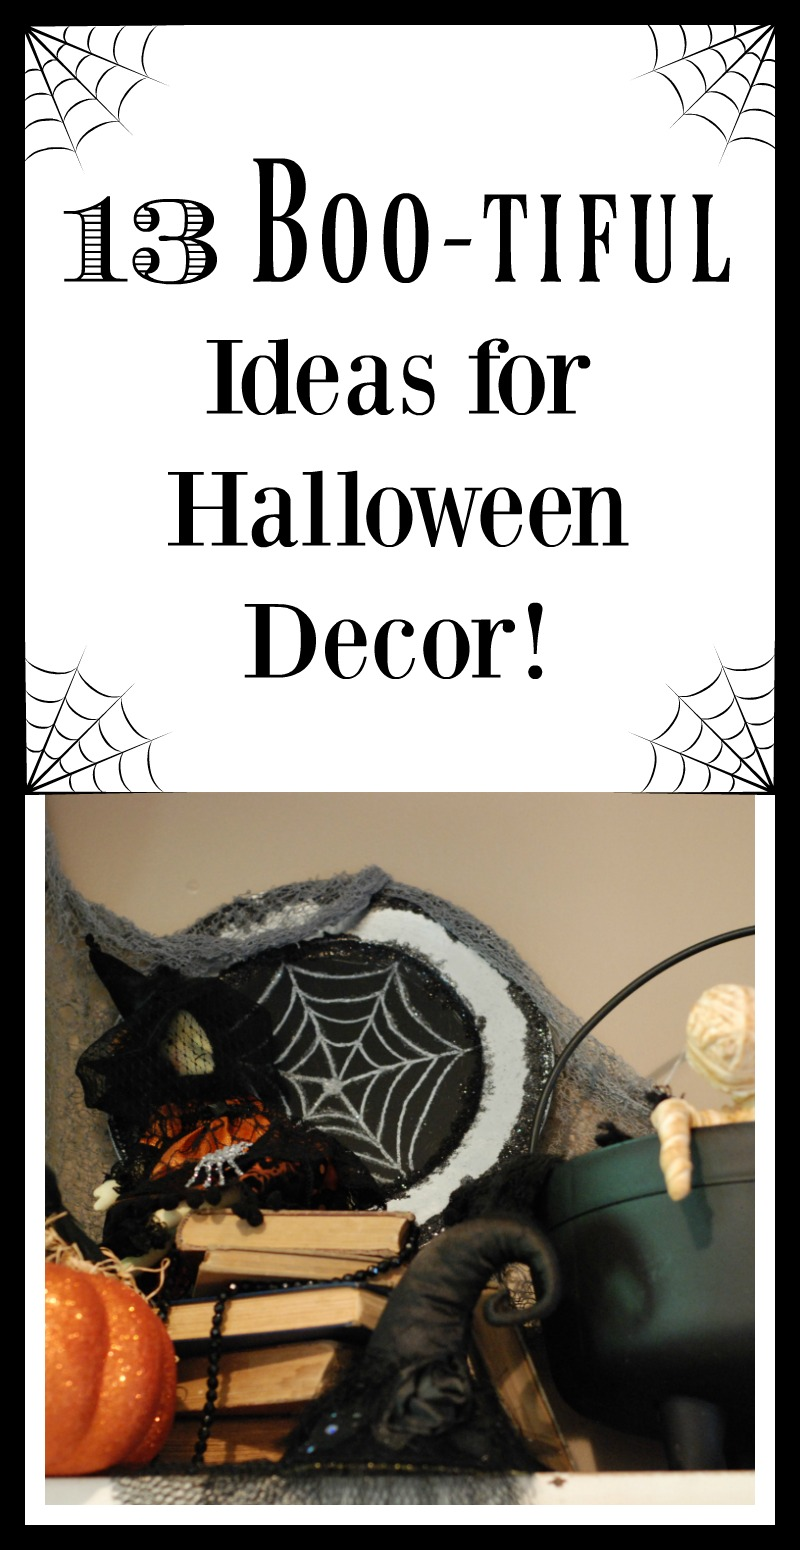 13 Boo-tiful Ideas for Halloween Decor! www.thatonemom.com